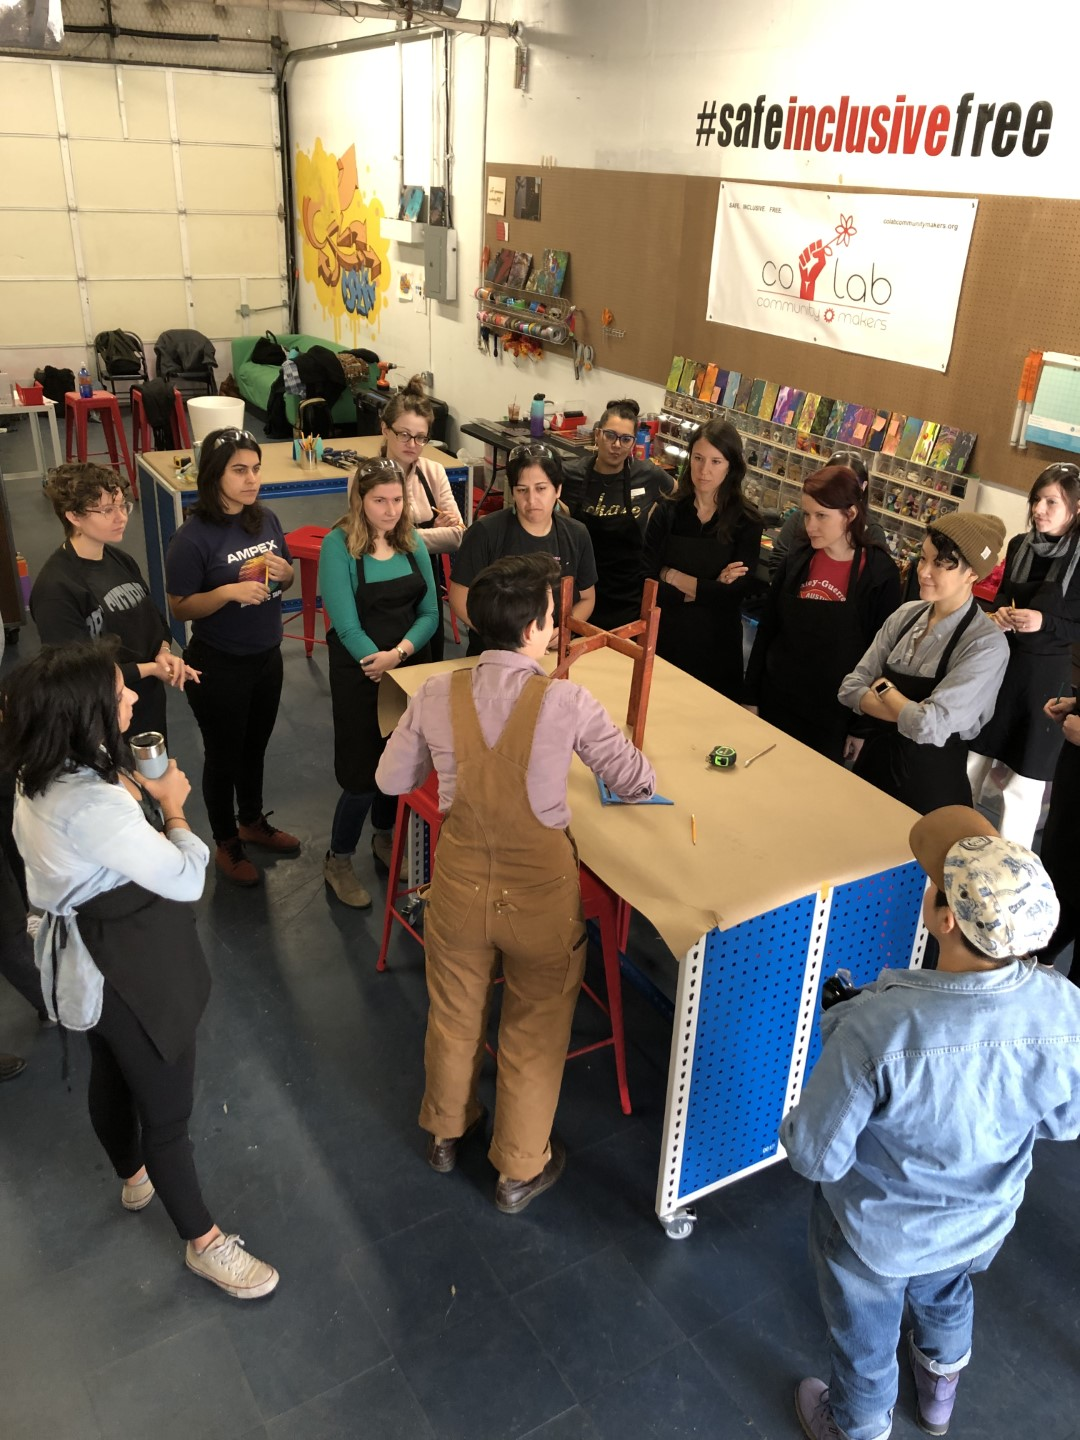 Makerspace Spotlight: Co Lab // Community Makers in Austin